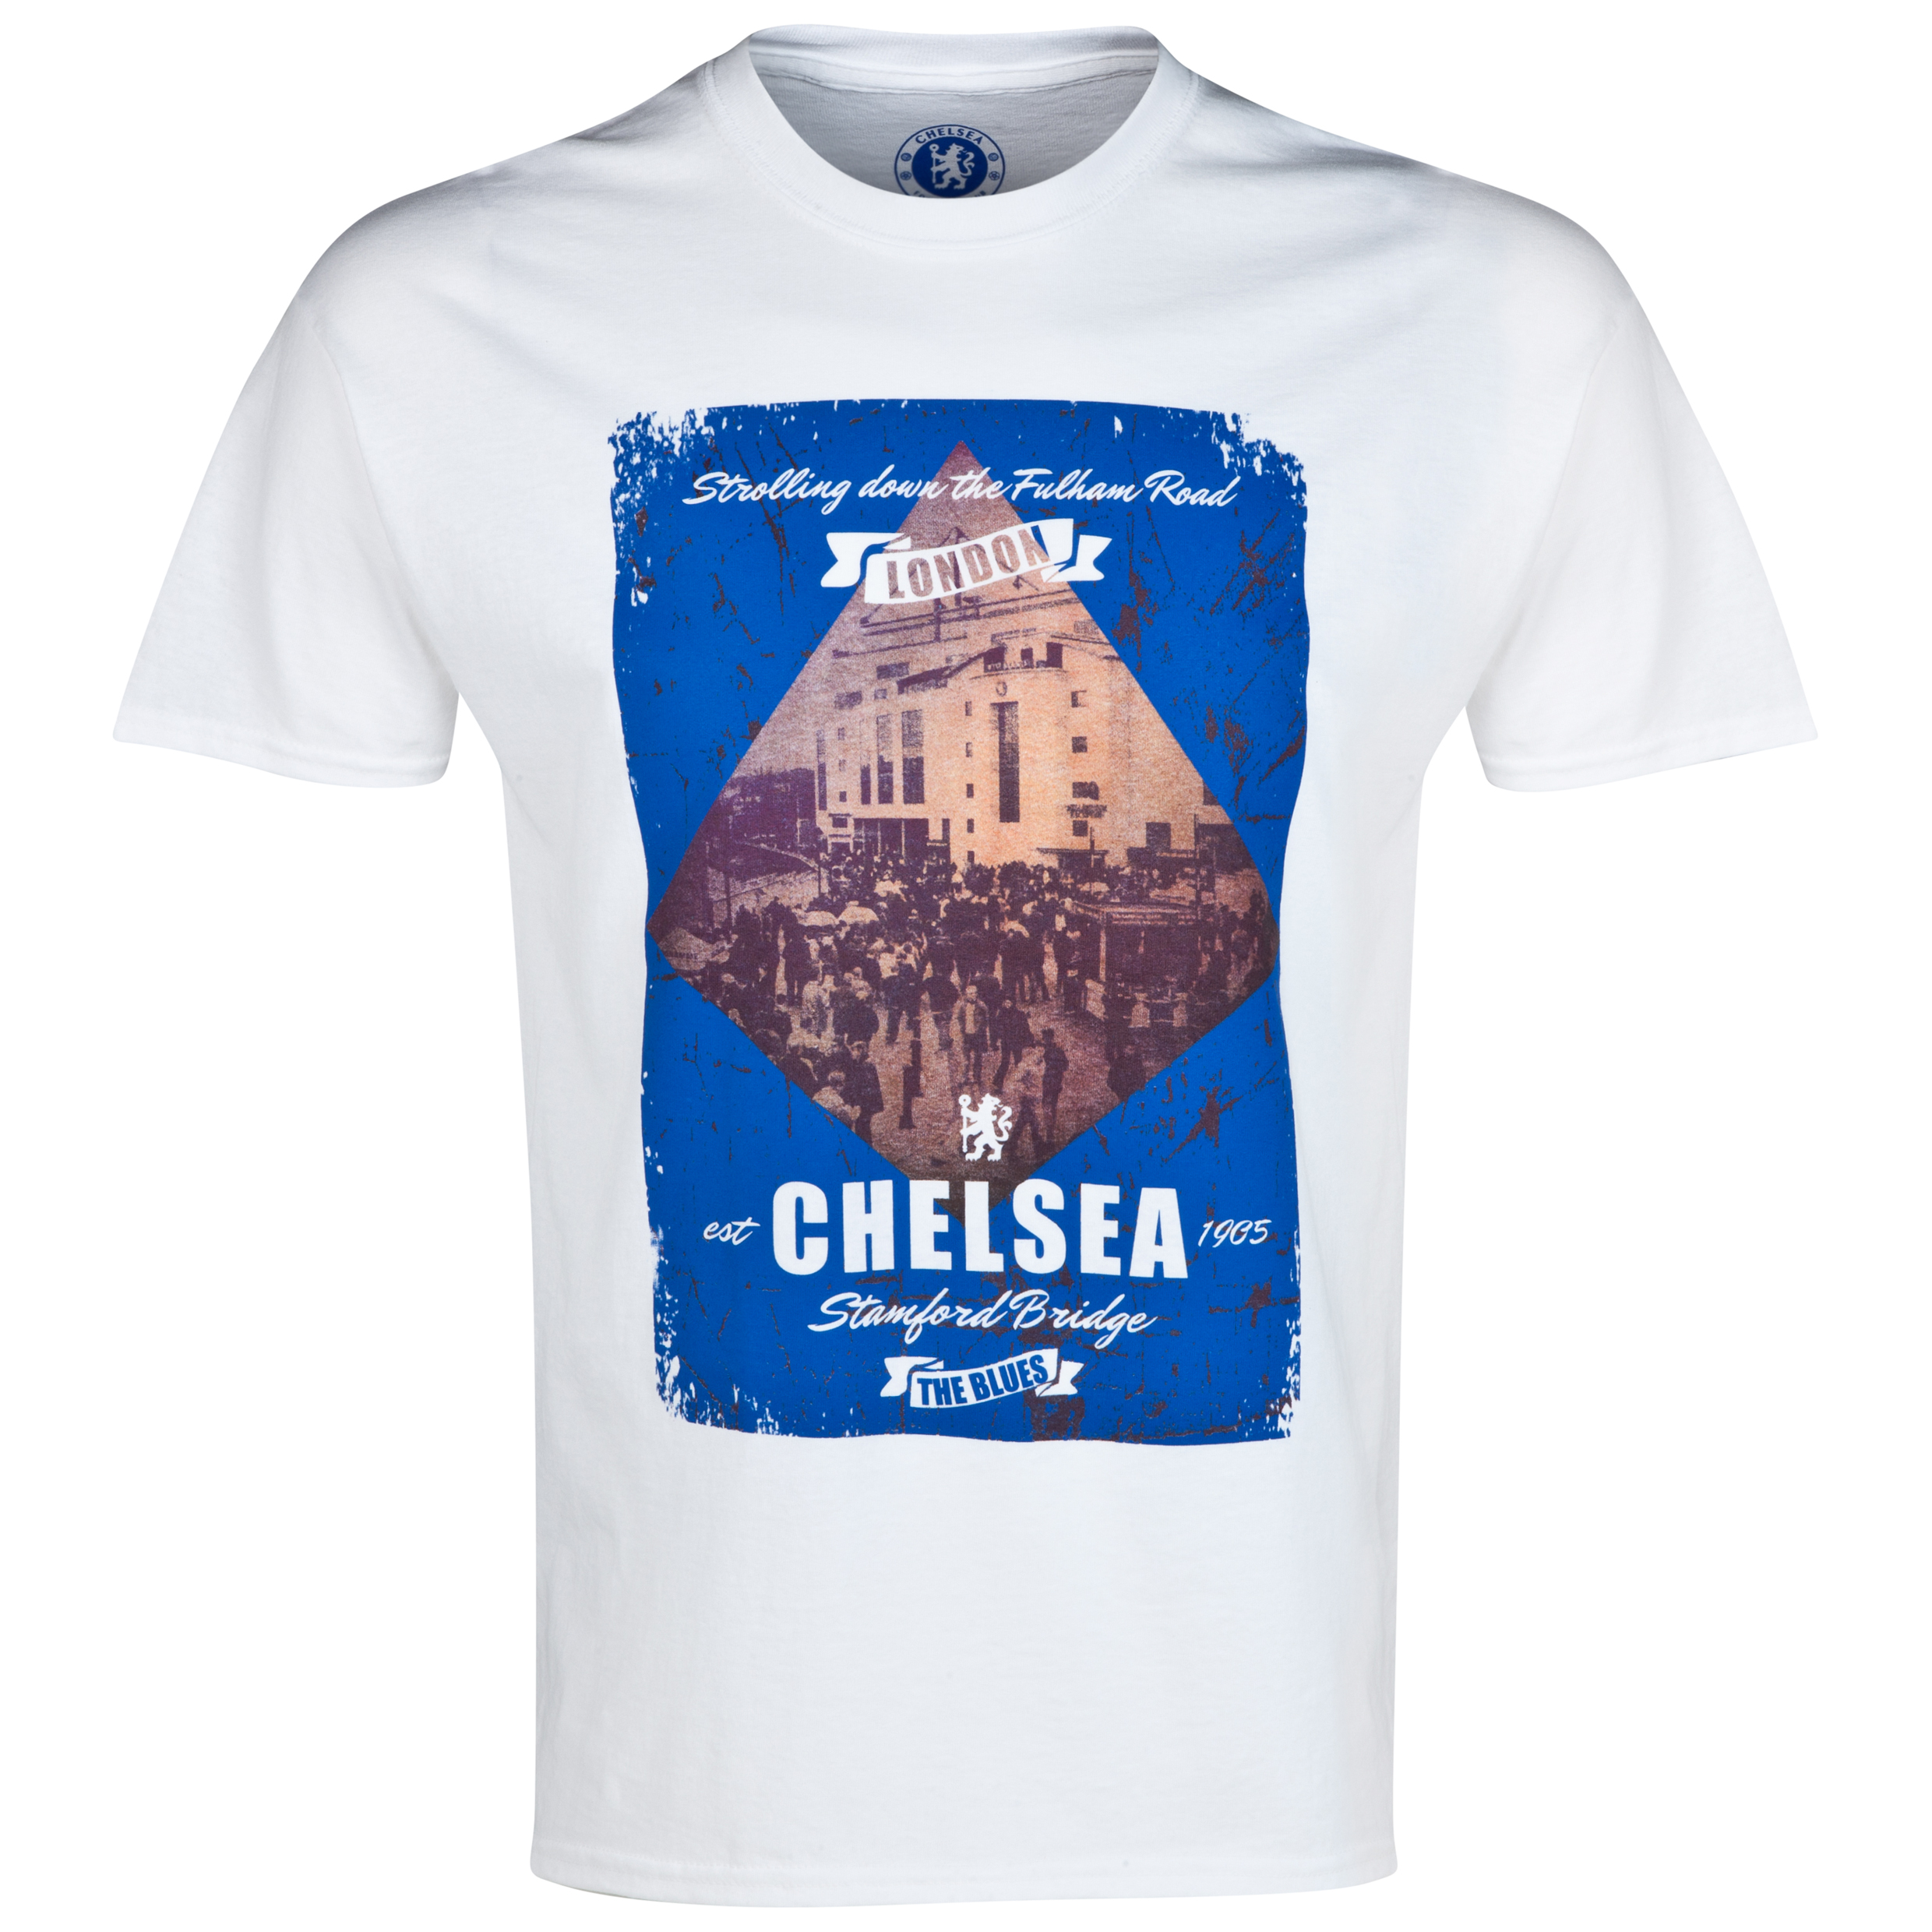 Chelsea Fulham Road T-Shirt - Mens White